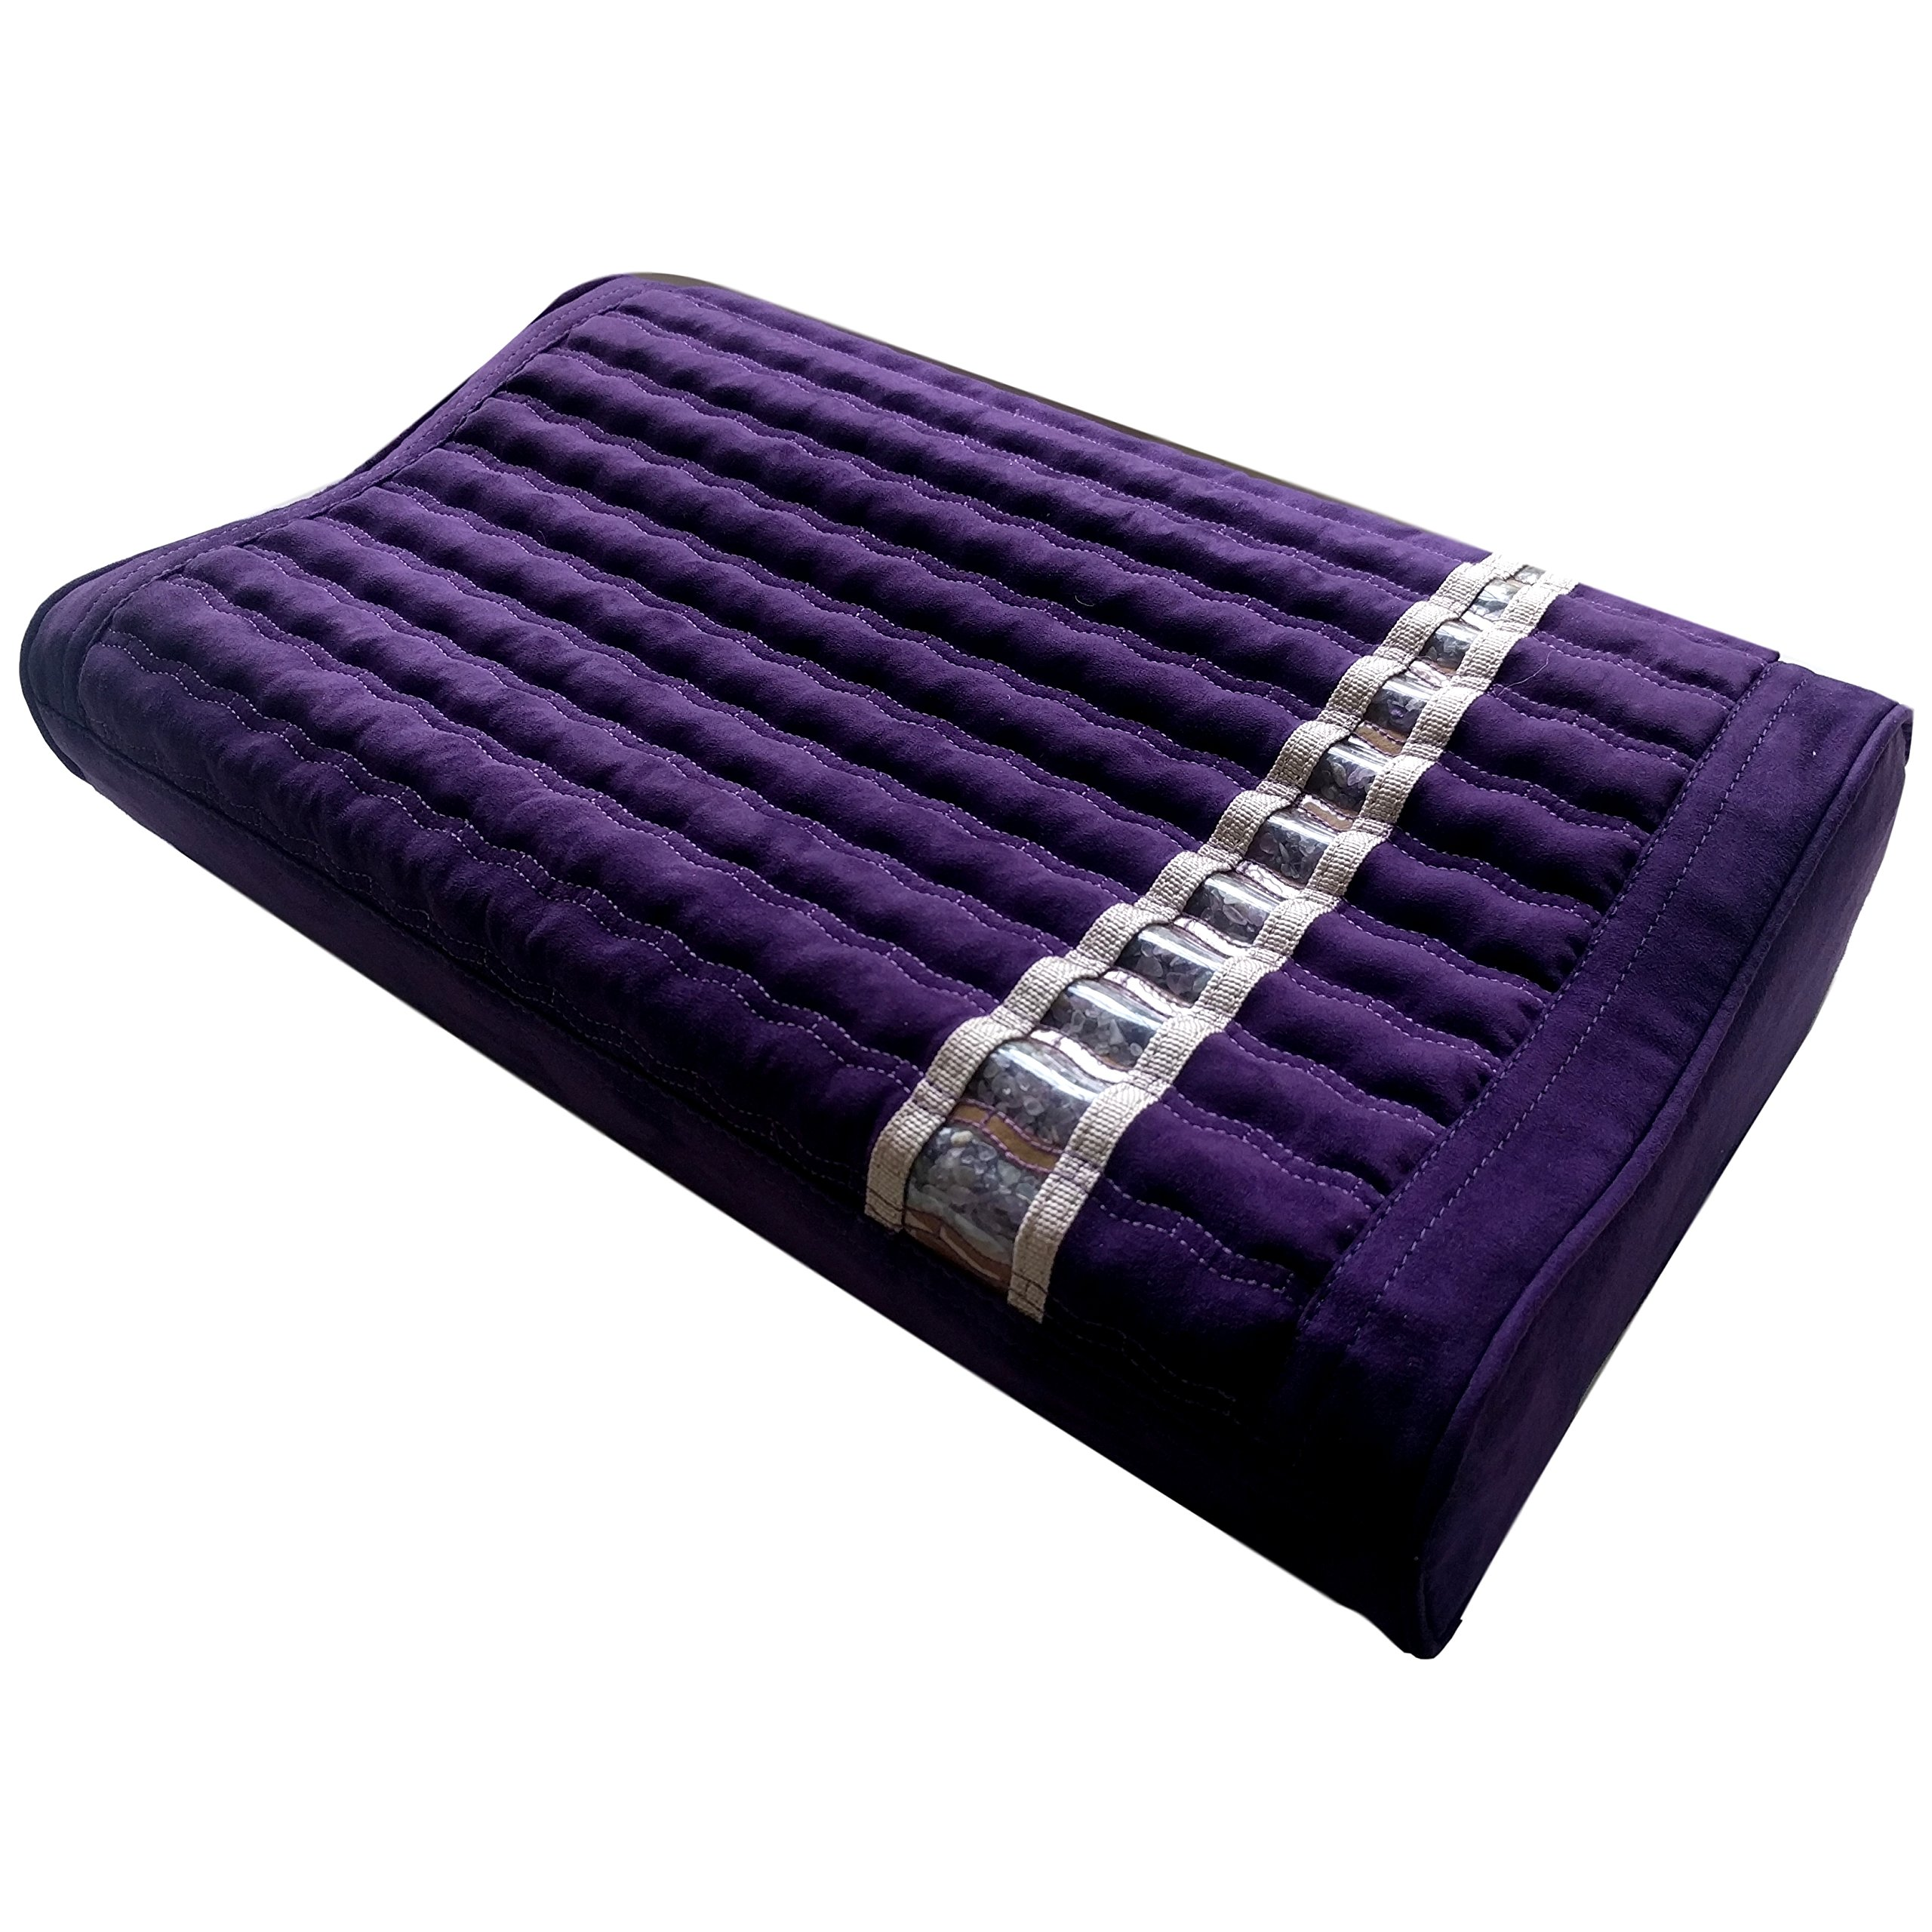 Far Infrared Amethyst Mat Pillow - Emits Negative Ions - Crystal FIR Rays - 100% Natural Amethyst Gemstones - Non Electric - For Headache and Stress Relief - To Sleep Better - GENTLE support - Purple by MediCrystal